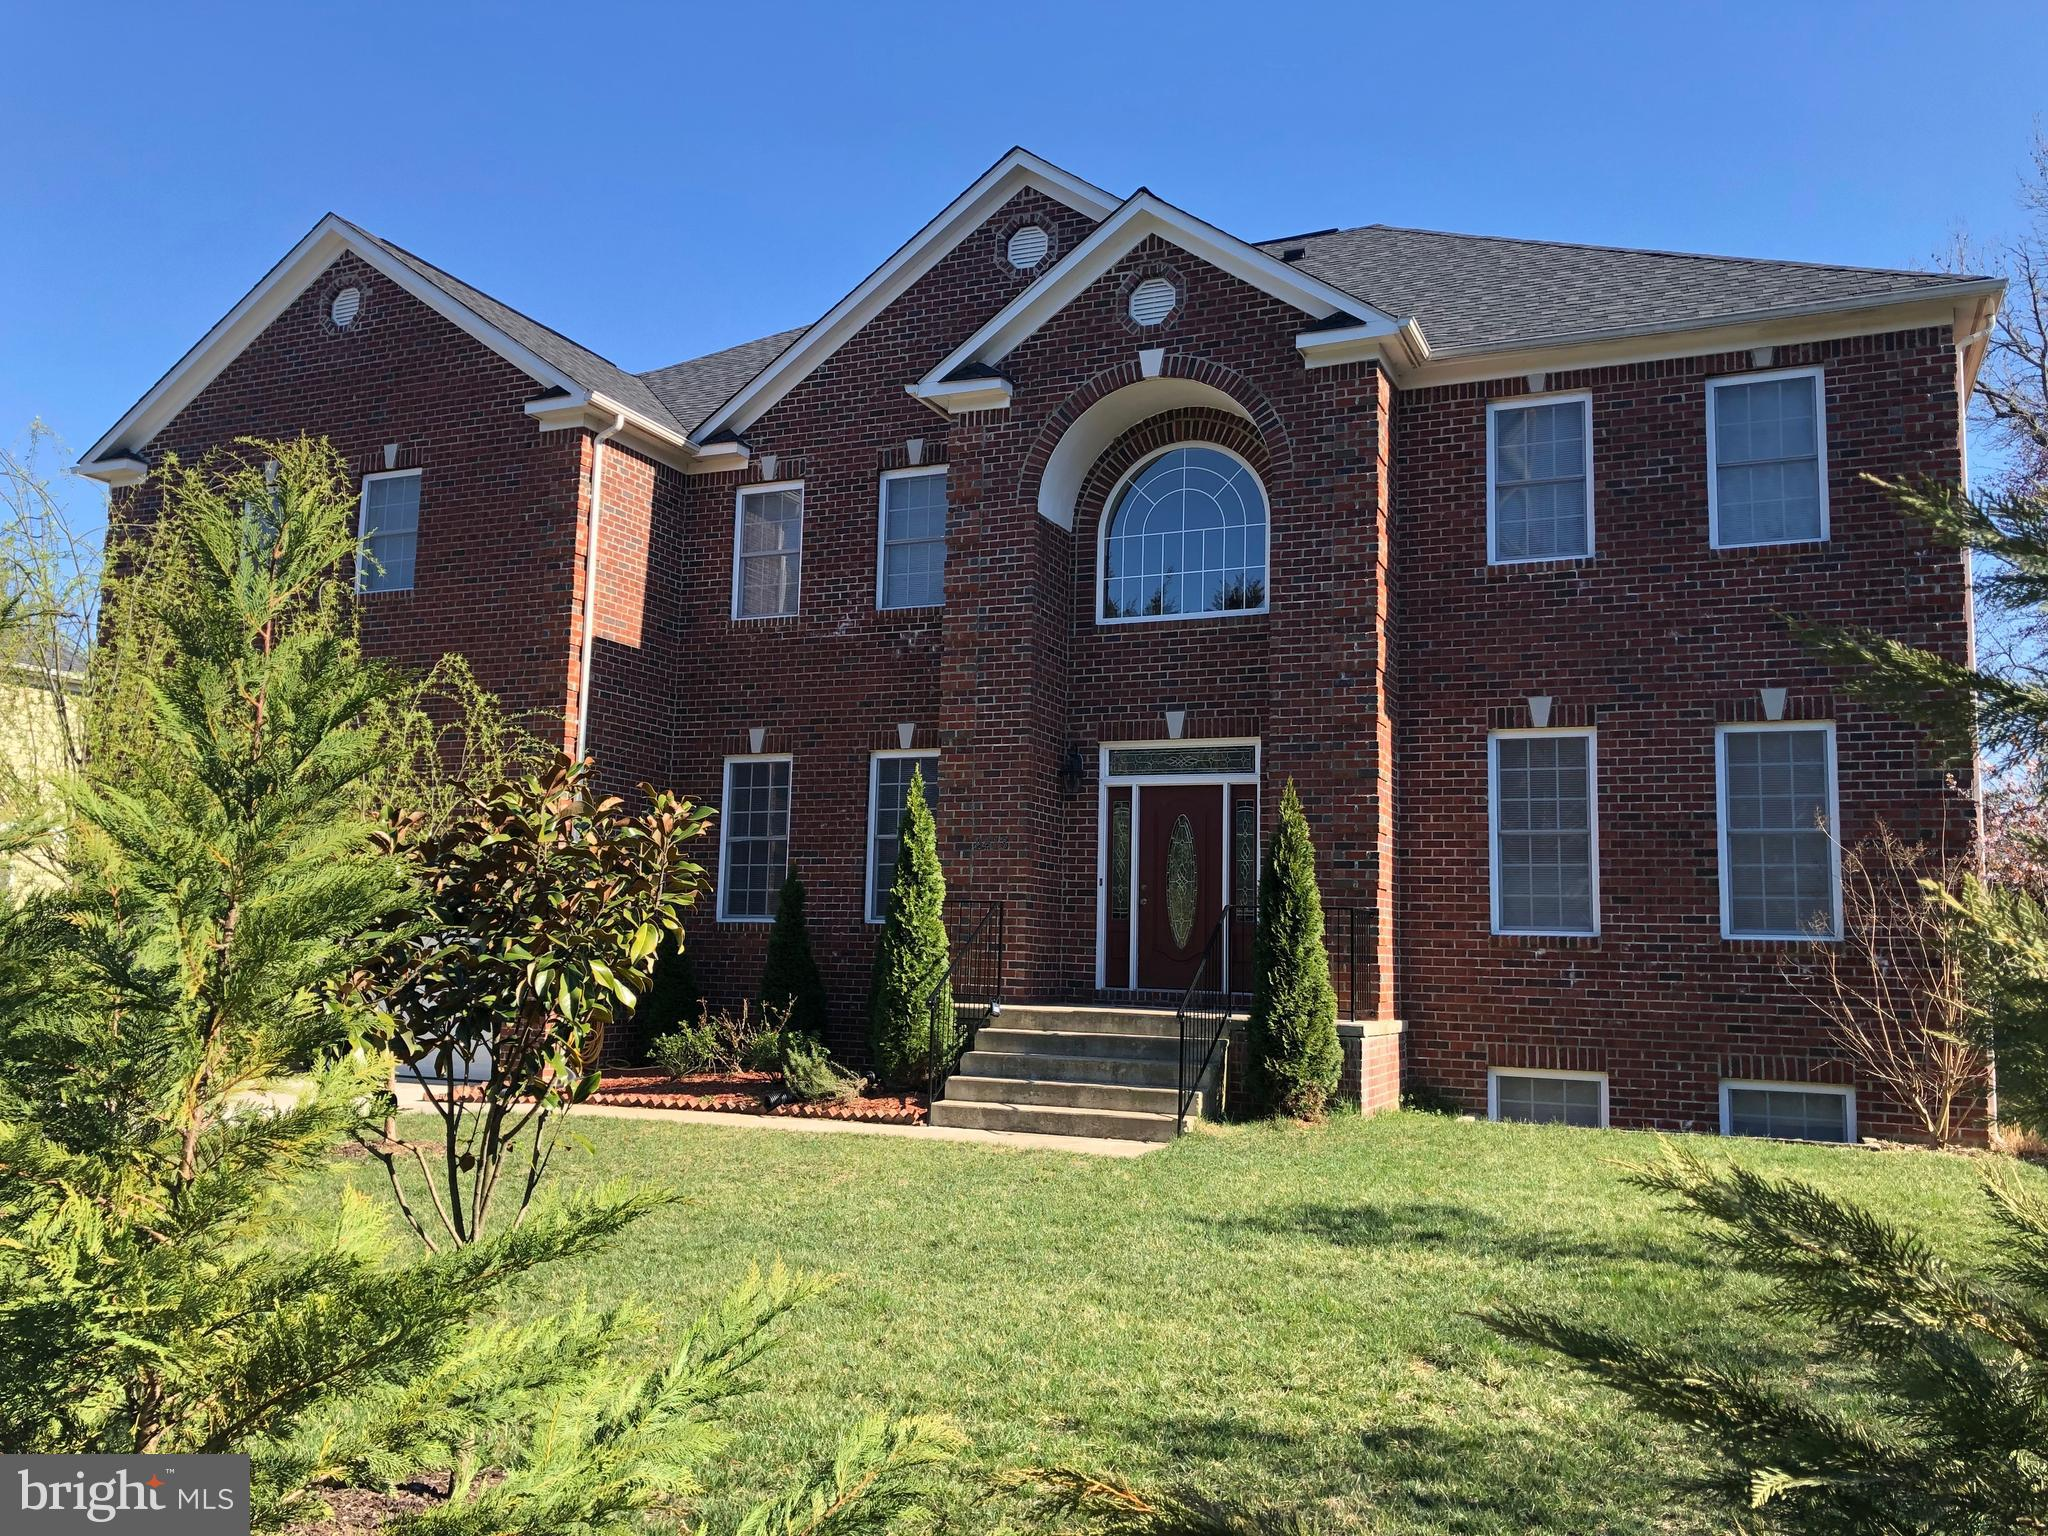 STUNNING CUSTOM ALL BRICK COLONIAL LOCATED ALMOST AT THE END OF PRIVATE COURT ON A .50 ACRE FLAT LOT, HIGH CEILINGS AND FULLY FINISH BASEMENT WITH REAR ENTRANCE, ONLY MINUTES AWAY FROM THE POTOMAC RIVER OLD TOWN ALEXANDRIA, BELT WAY AND FORT HUNT RD, SELLER WILL CONSIDER ANY REASONABLE OFFER, THANK YOU FOR SHOWING